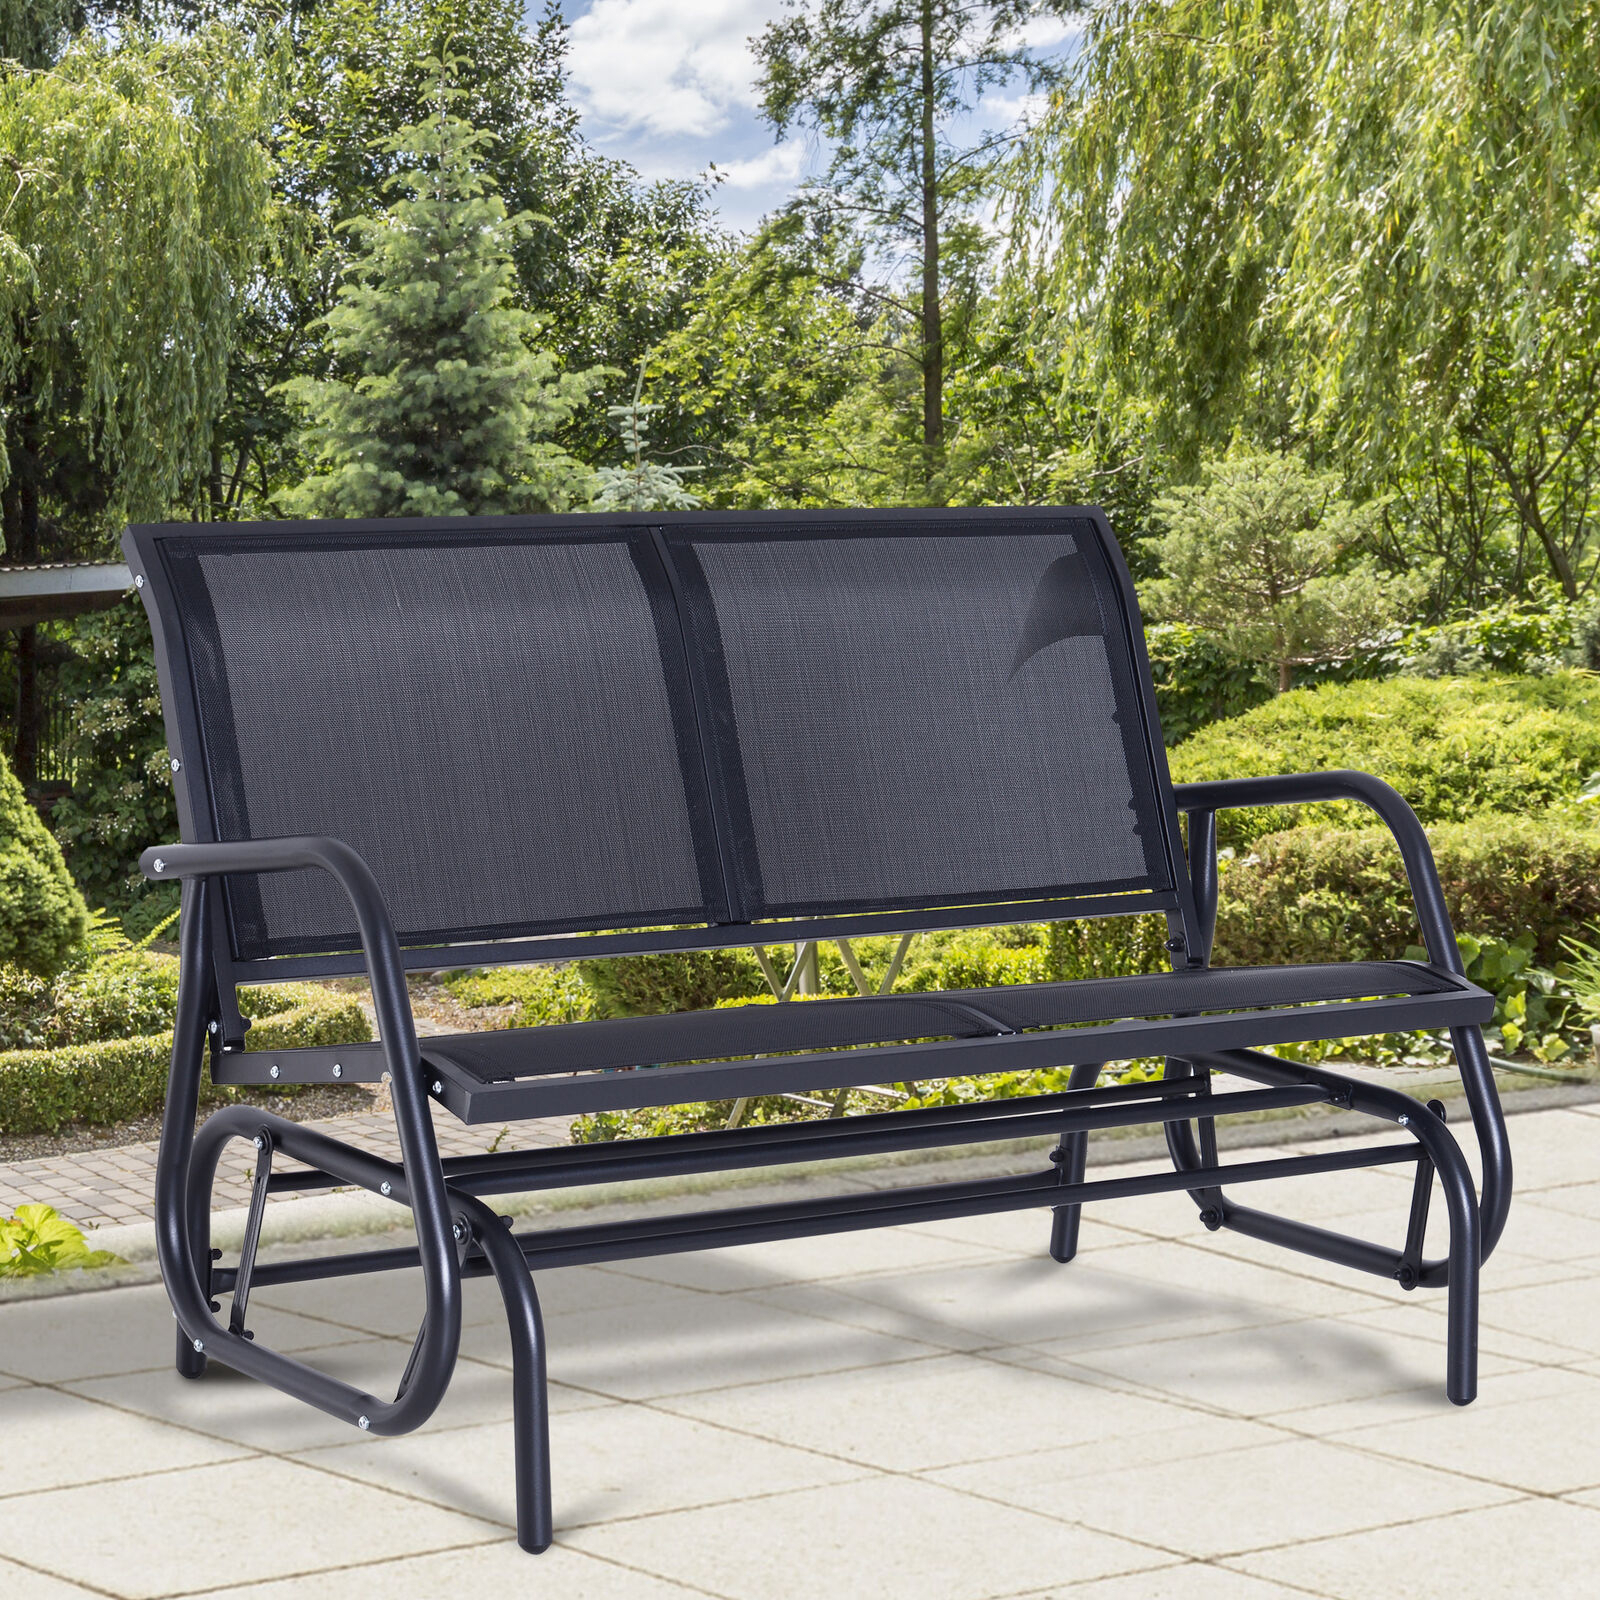 Outsunny Patio Double 2 Person Glider Bench Rocker Porch Love Seat Swing Chair Within Rocking Love Seats Glider Swing Benches With Sturdy Frame (View 9 of 25)